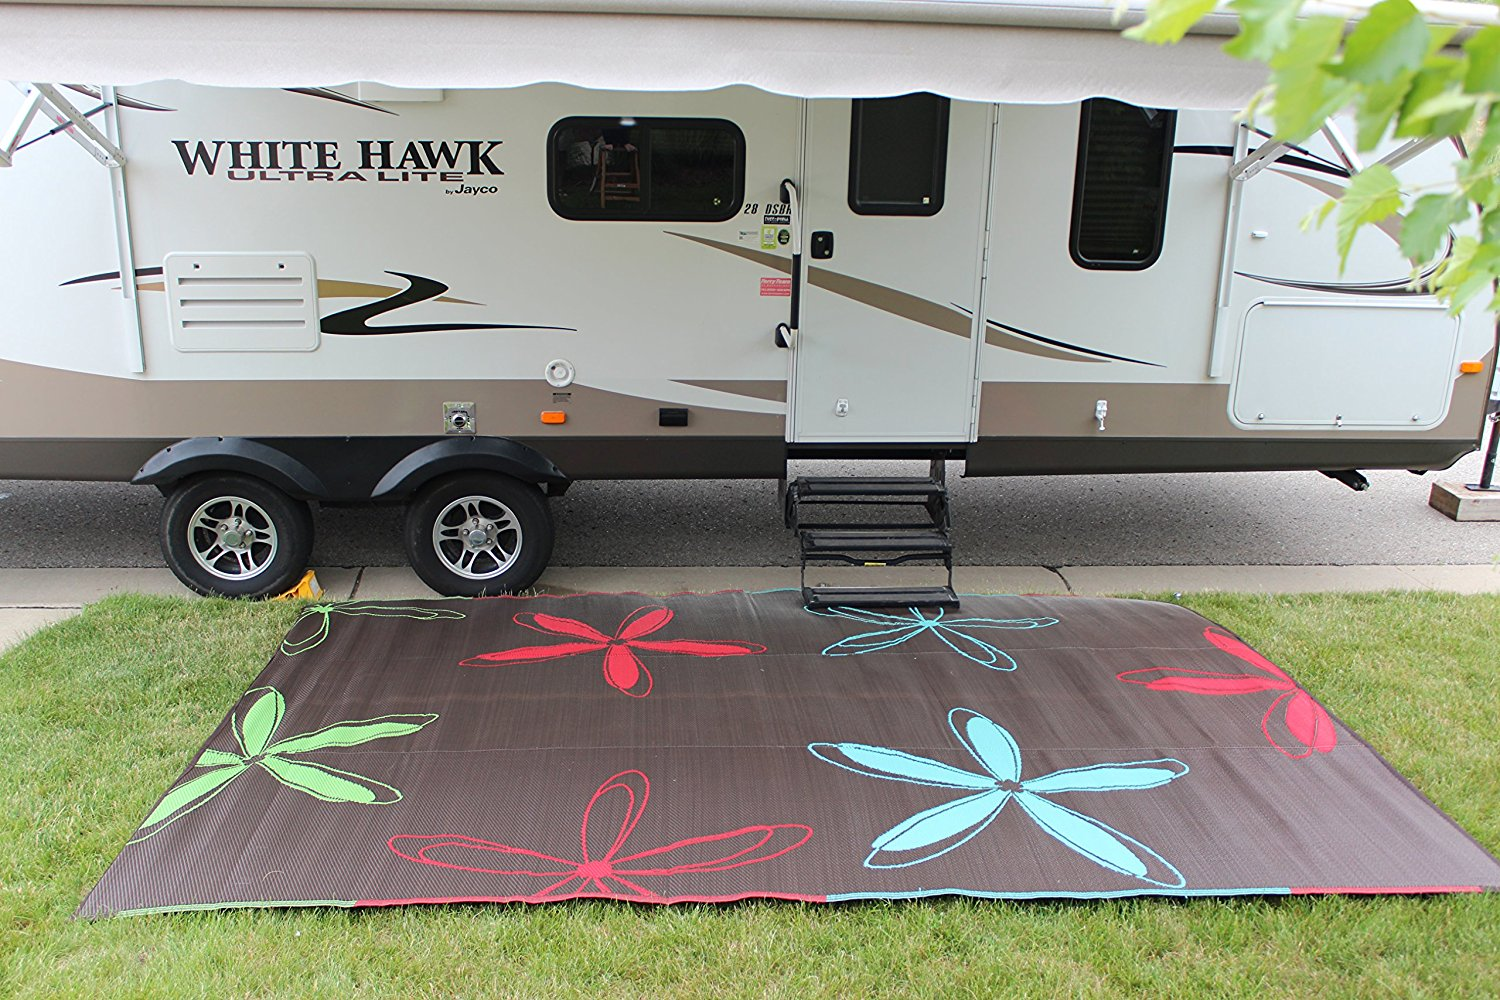 outdoor rv living patio mat rug c&ing gl&ing tent & 9x16 Colorful Floral RV Living Outdoor Patio Mat for Camping